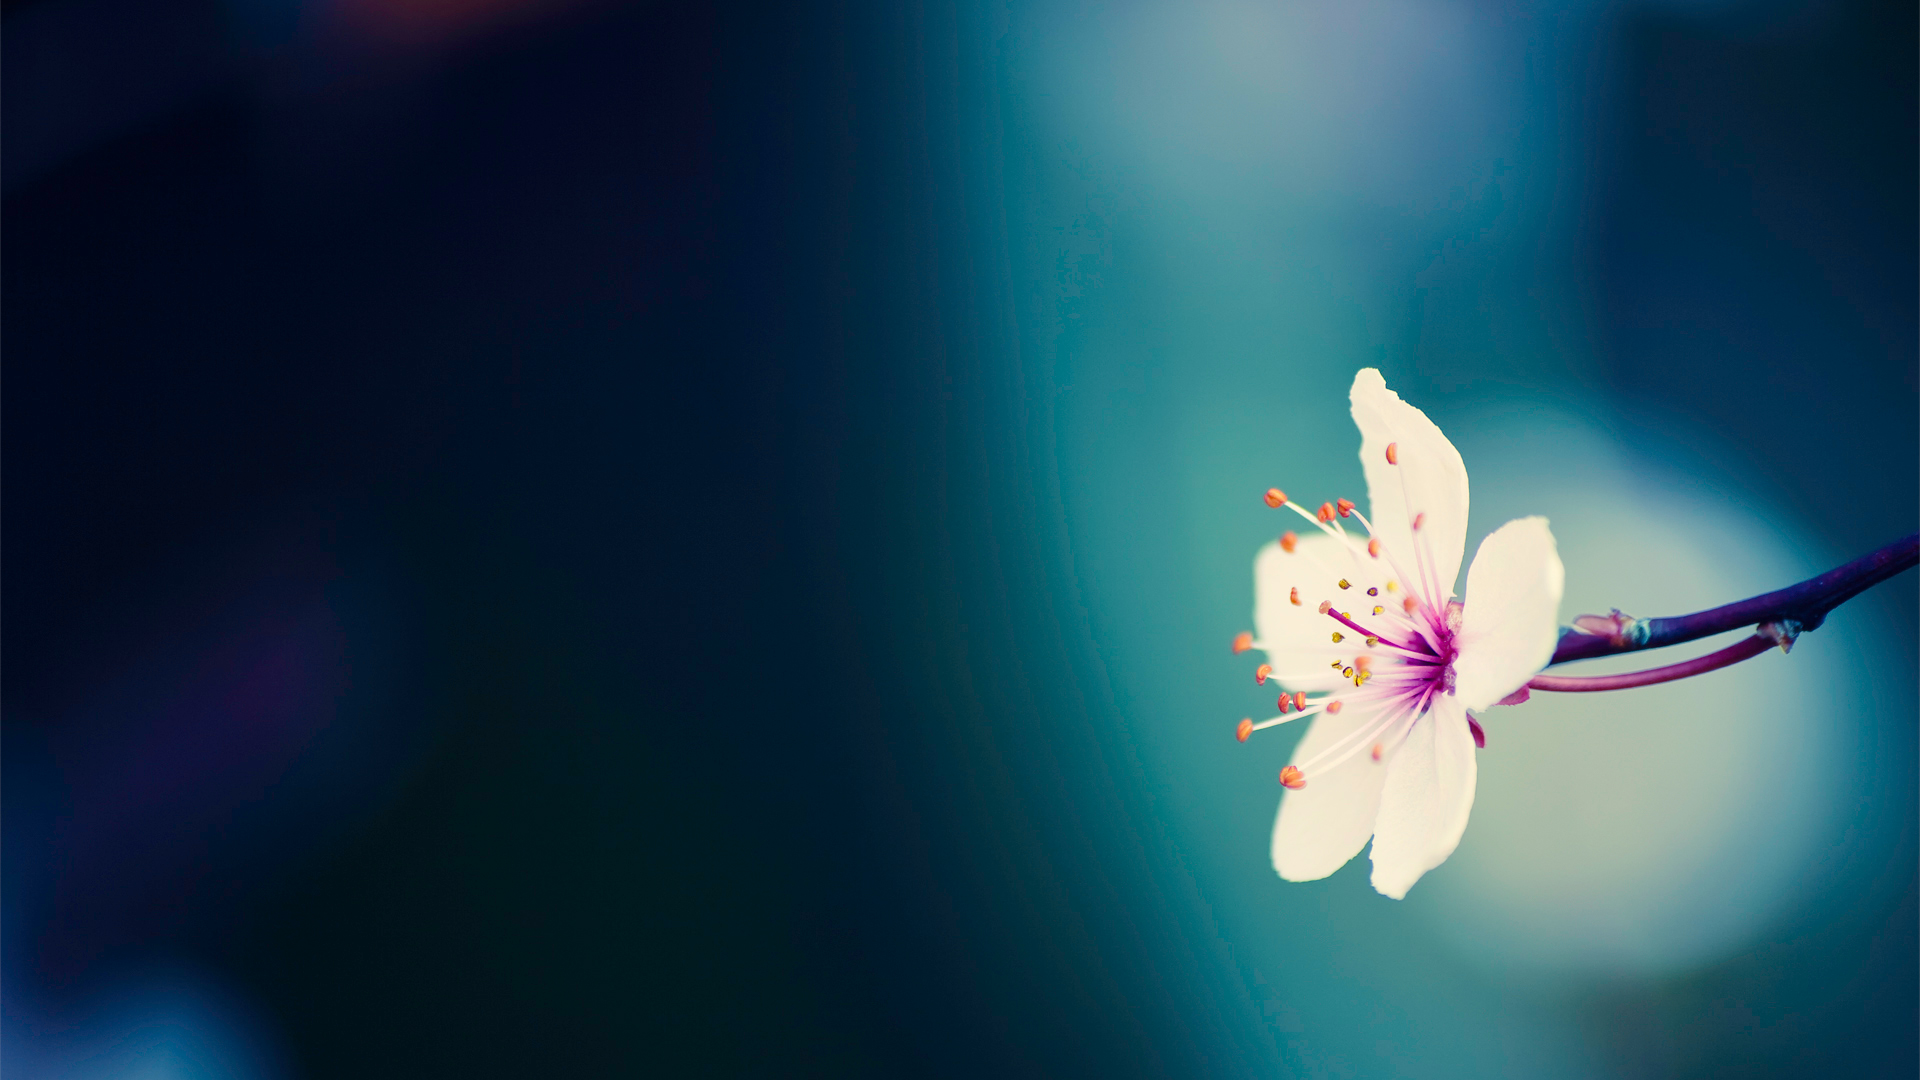 flowers background wallpaper you are viewing the nature wallpaper 1920x1080